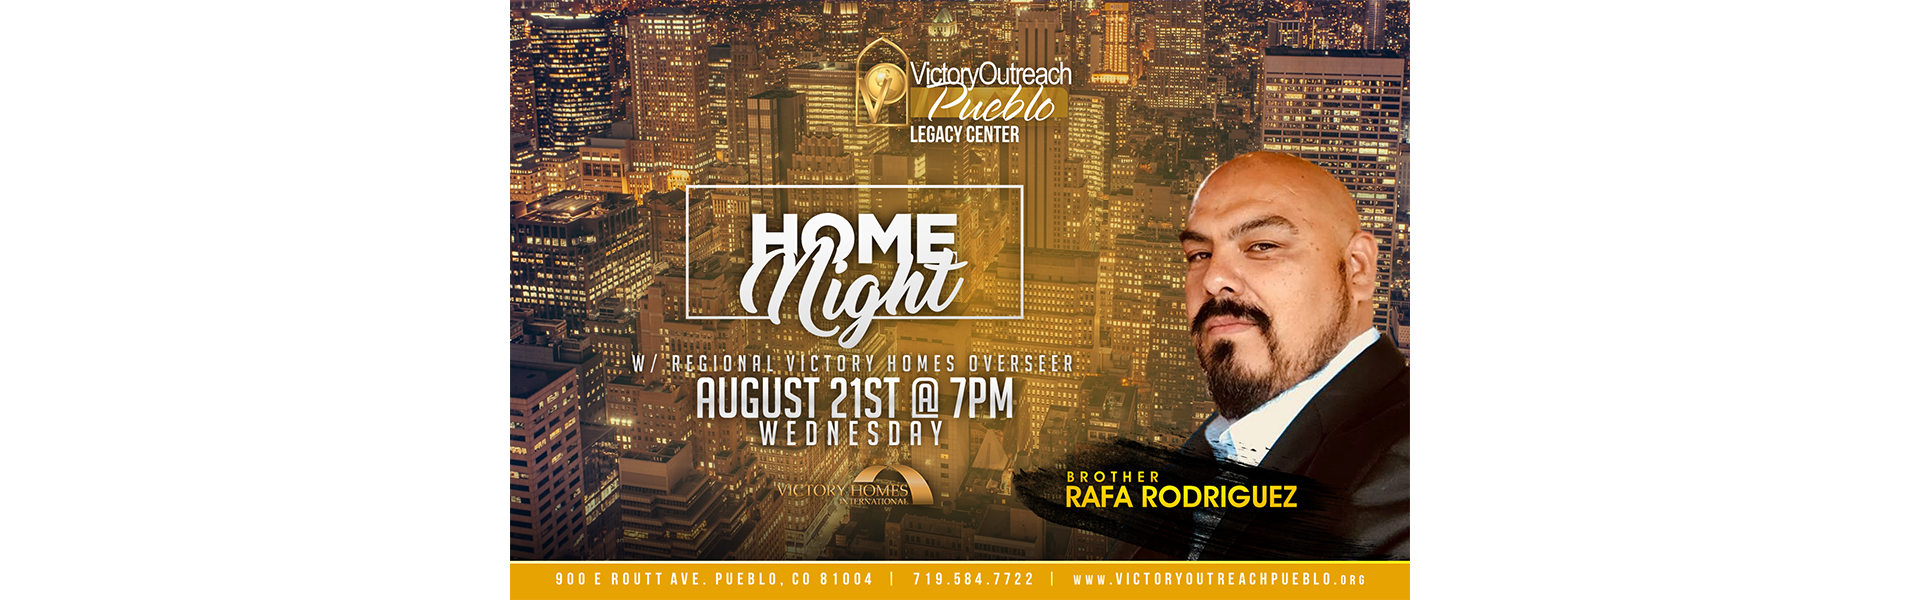 Home Night – Aug 21